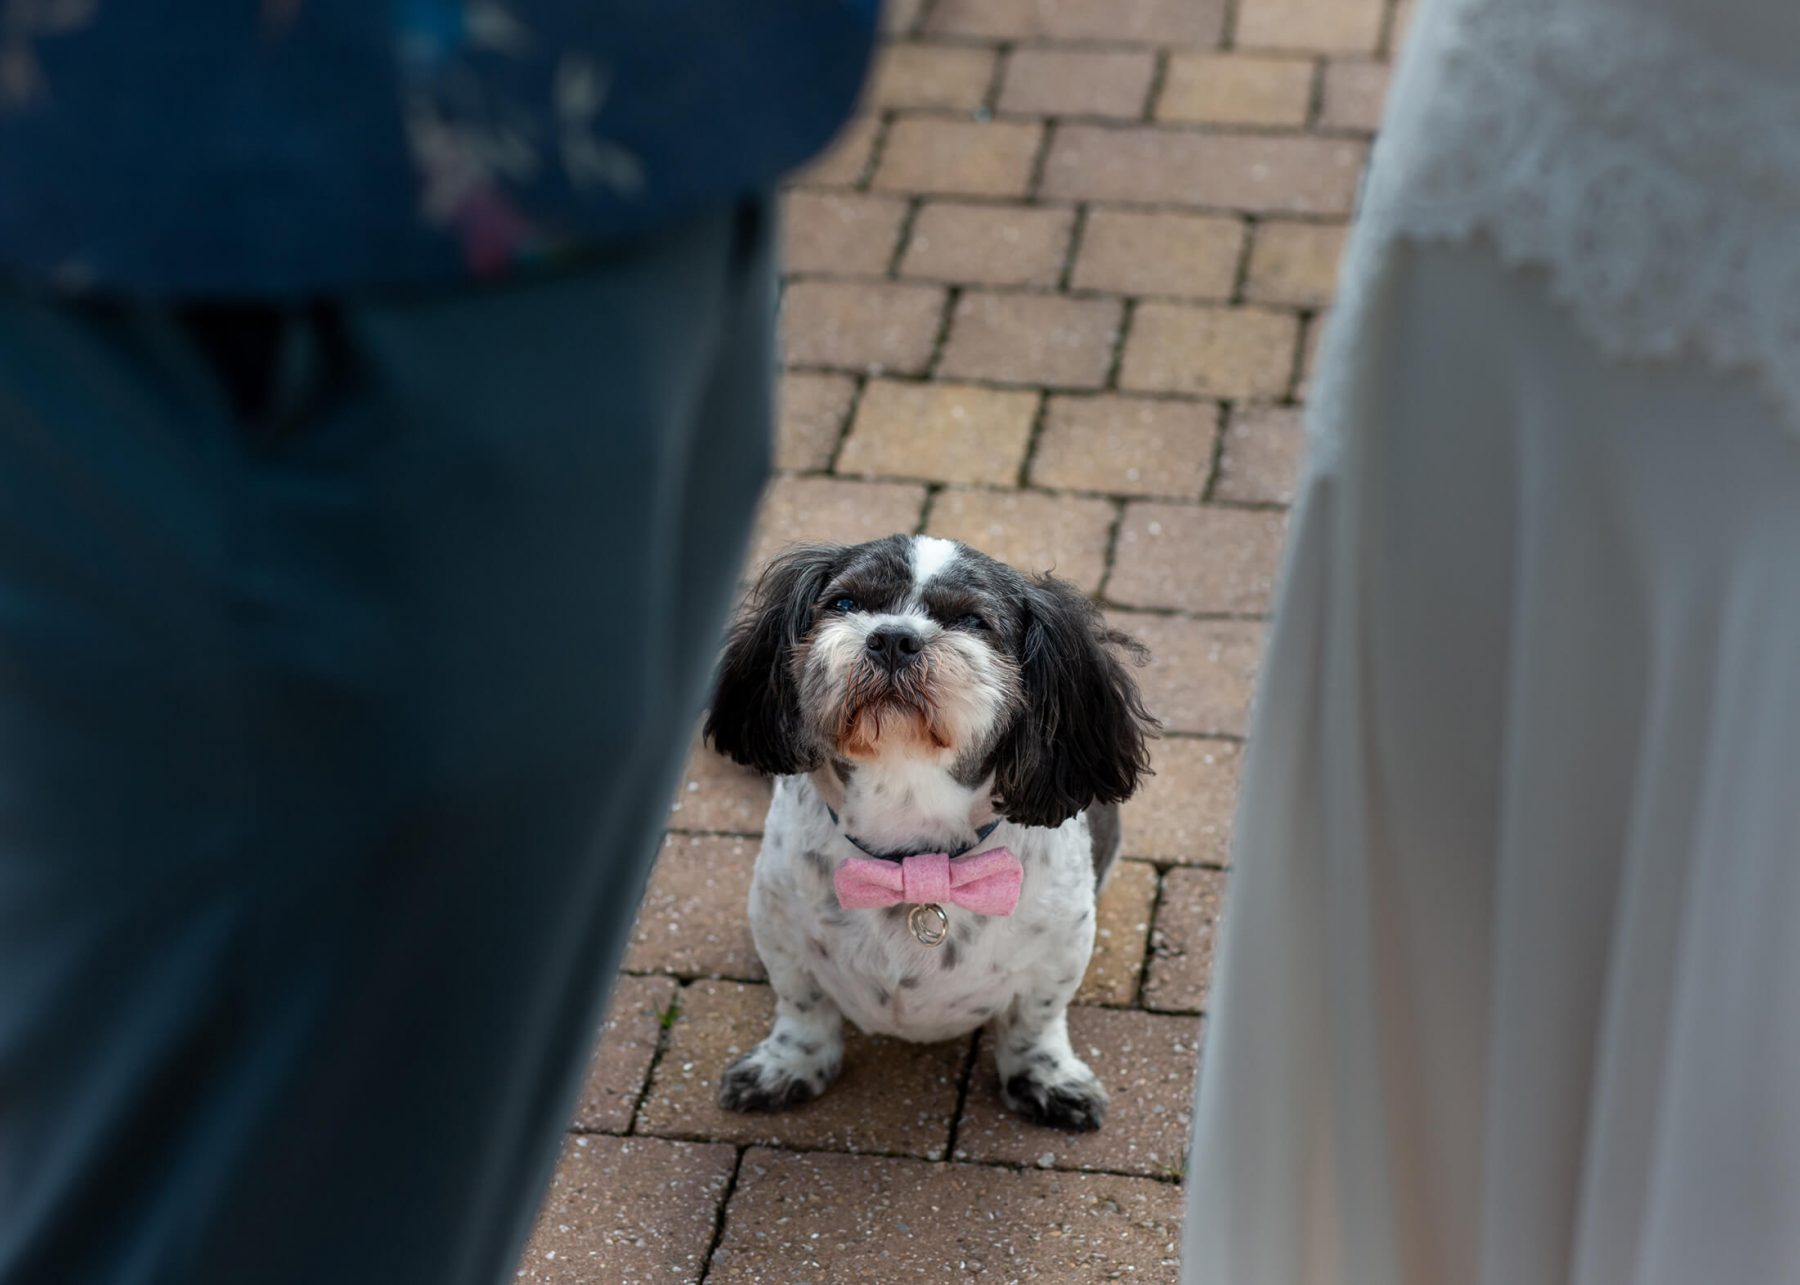 A dog as the ring bearer at a wedding in Cheshire, England.